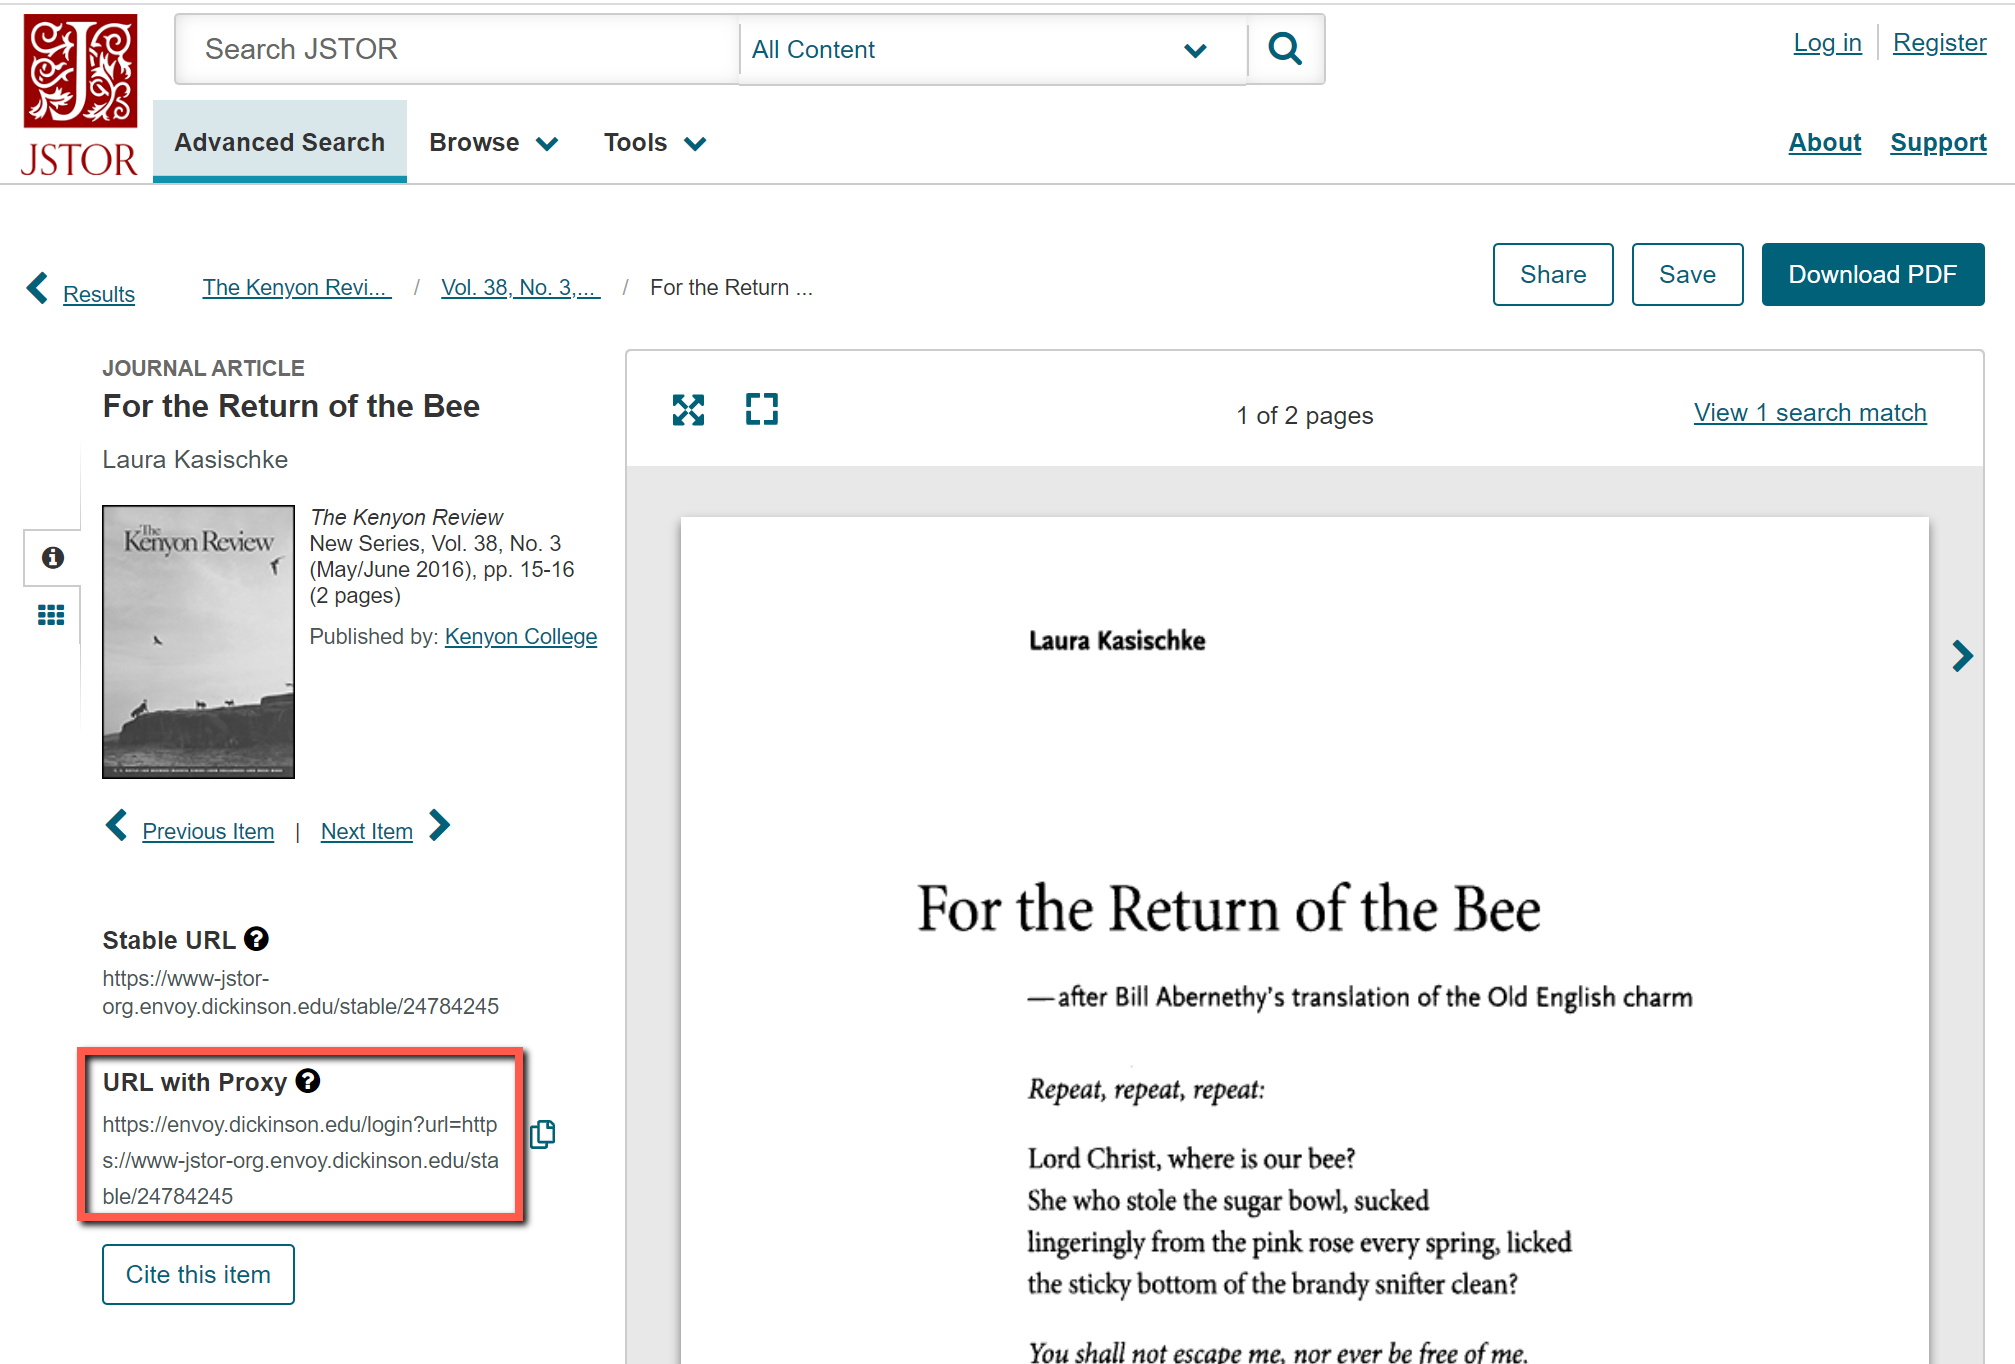 URL with proxy permalink on JSTOR article page